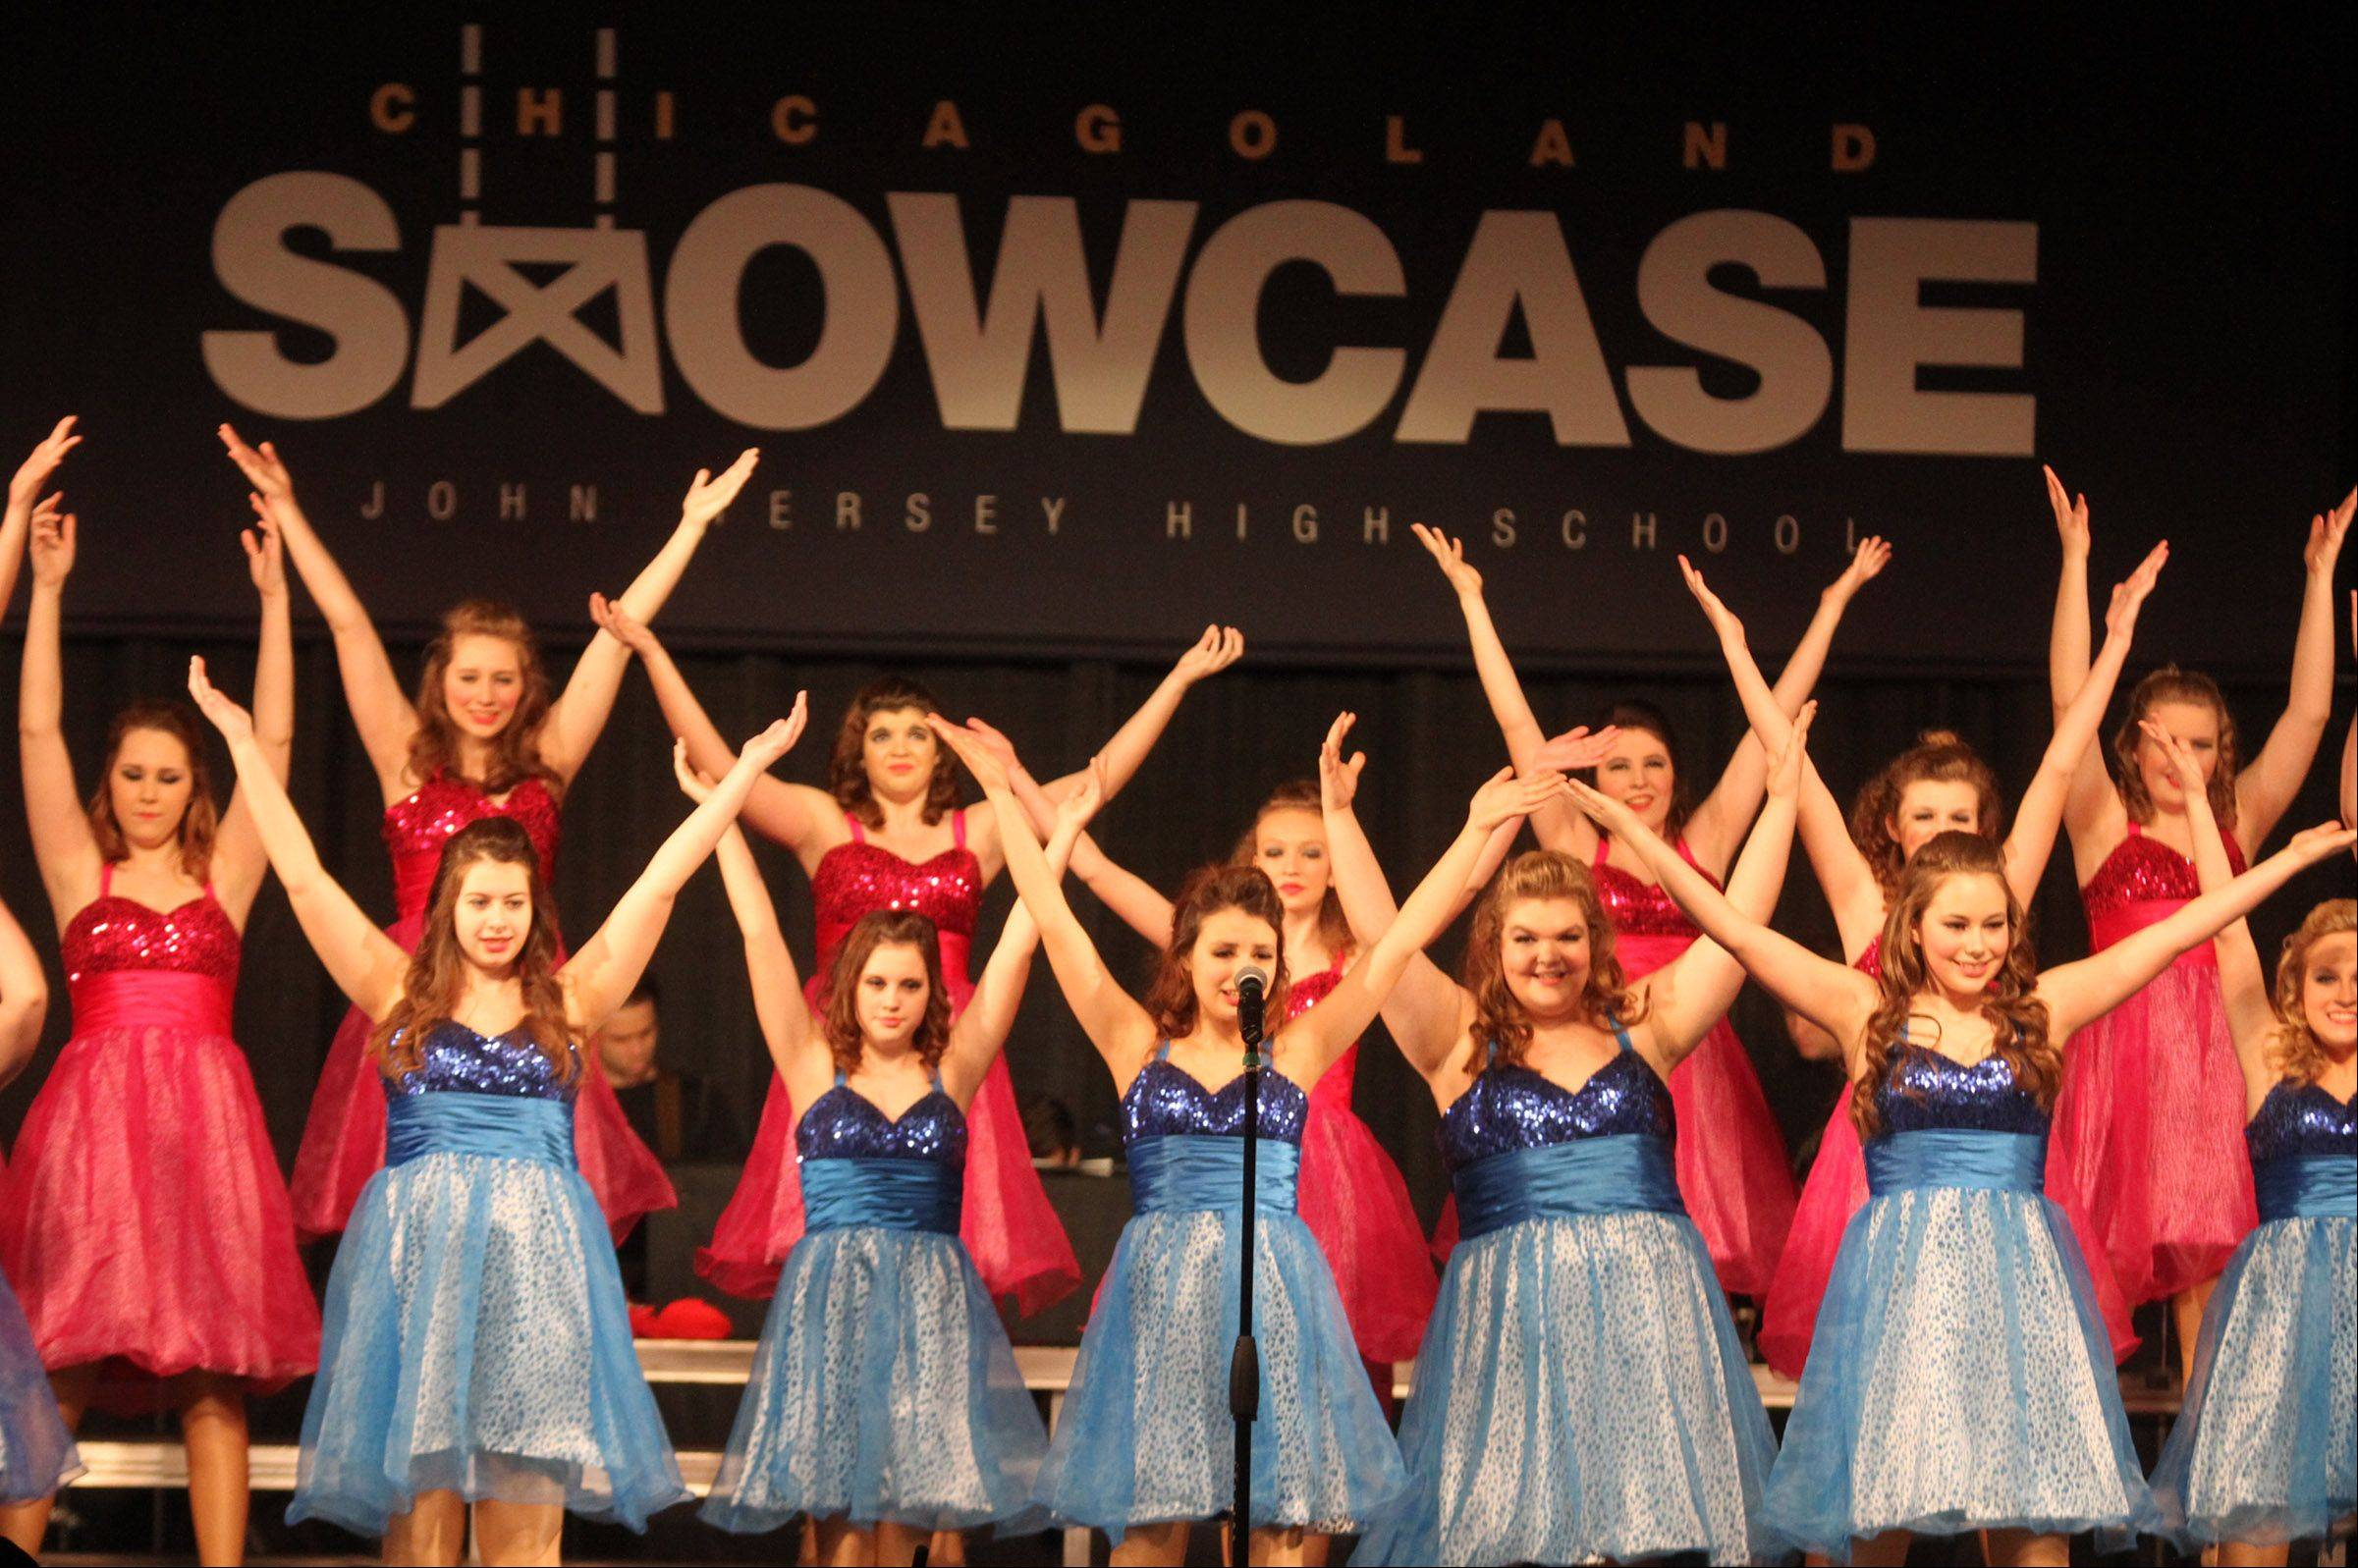 Dynamics of Wheaton North High School perform at the 20th annual Chicagoland Showcase hosted by Hersey High School in Arlington Heights on Saturday.